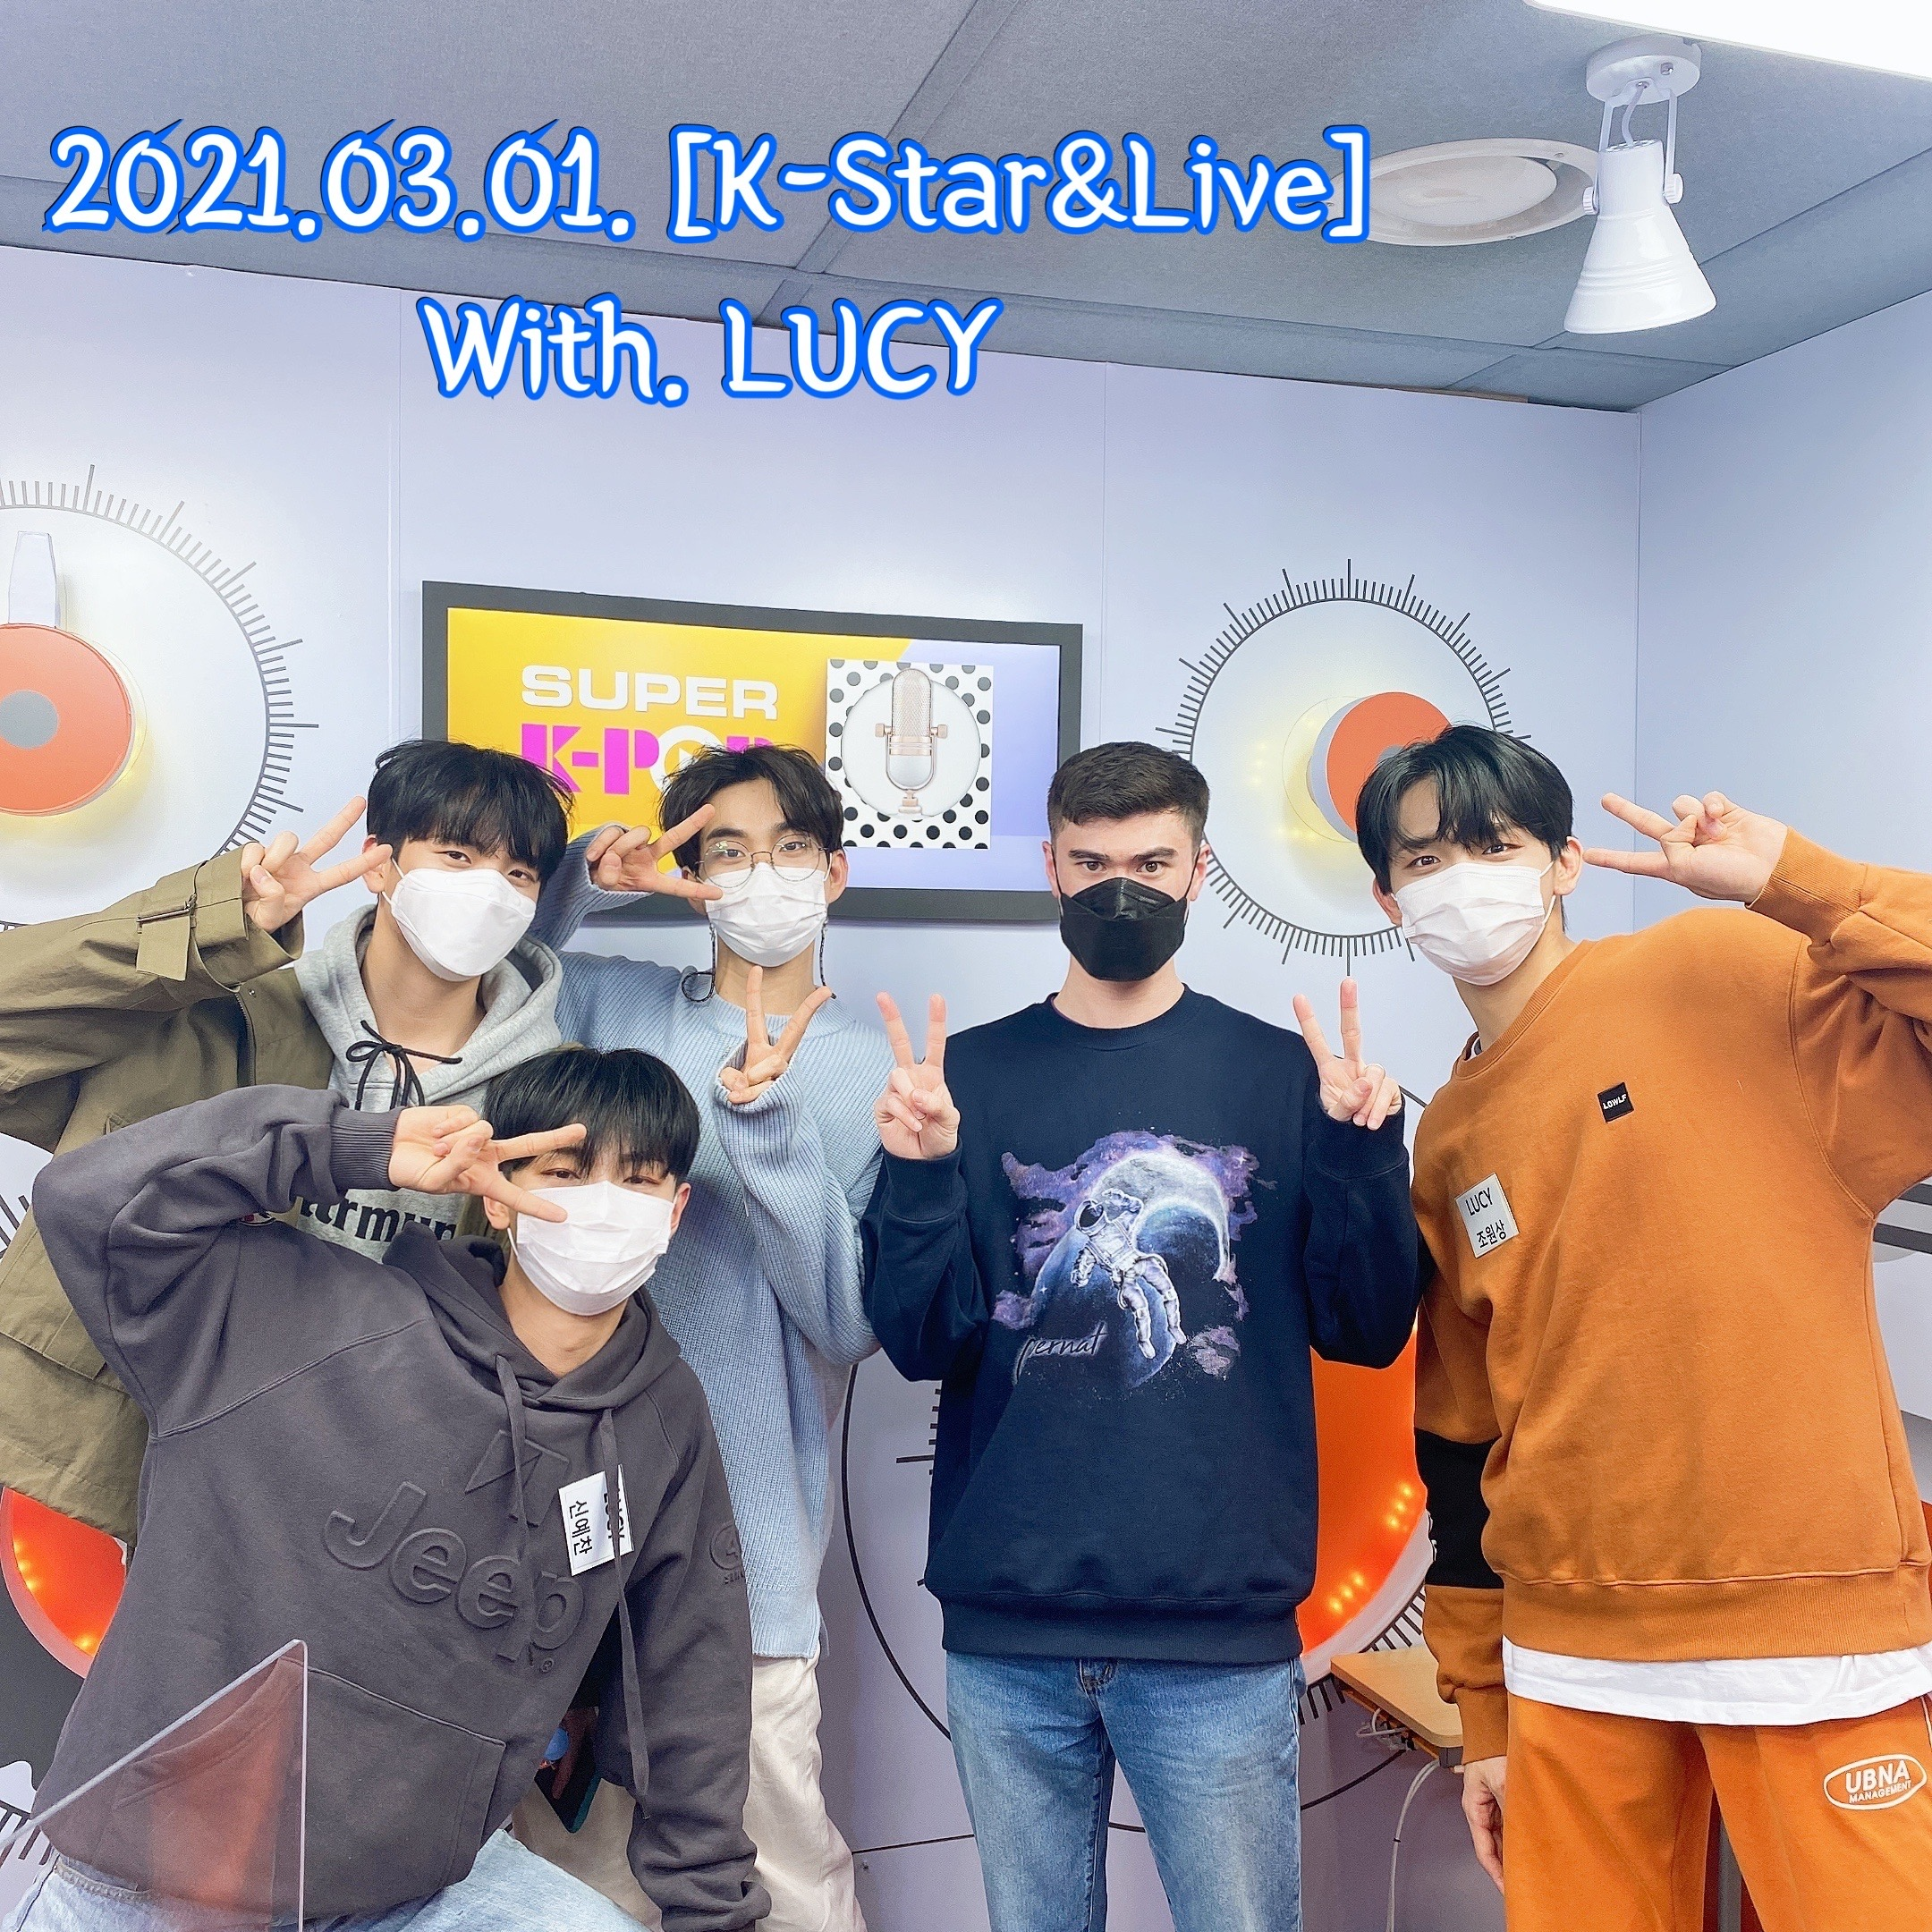 K-star & Live : LUCY